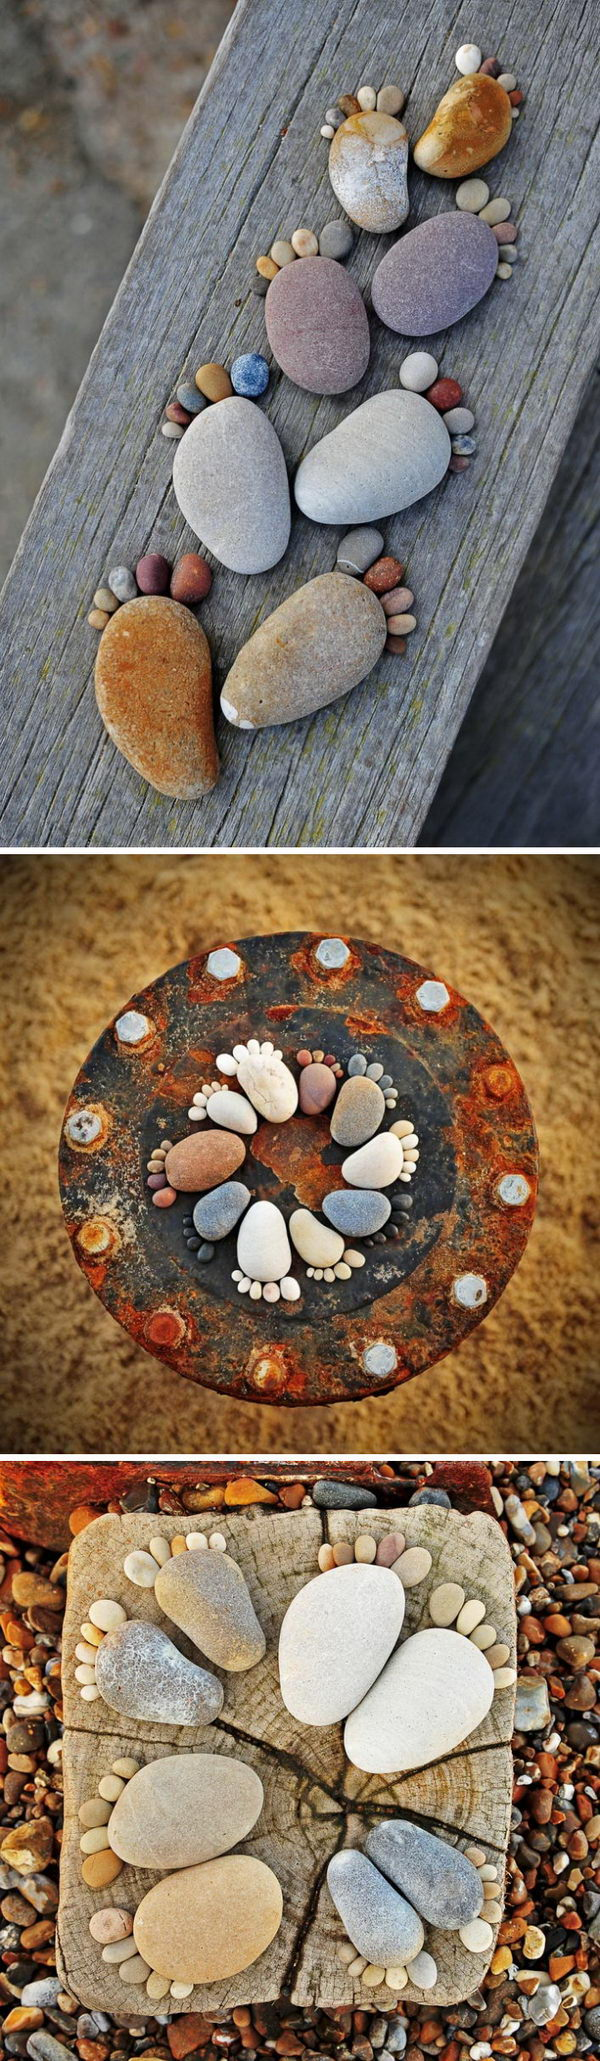 25 Diy Home Decor Ideas Using Pebbles And River Rocks